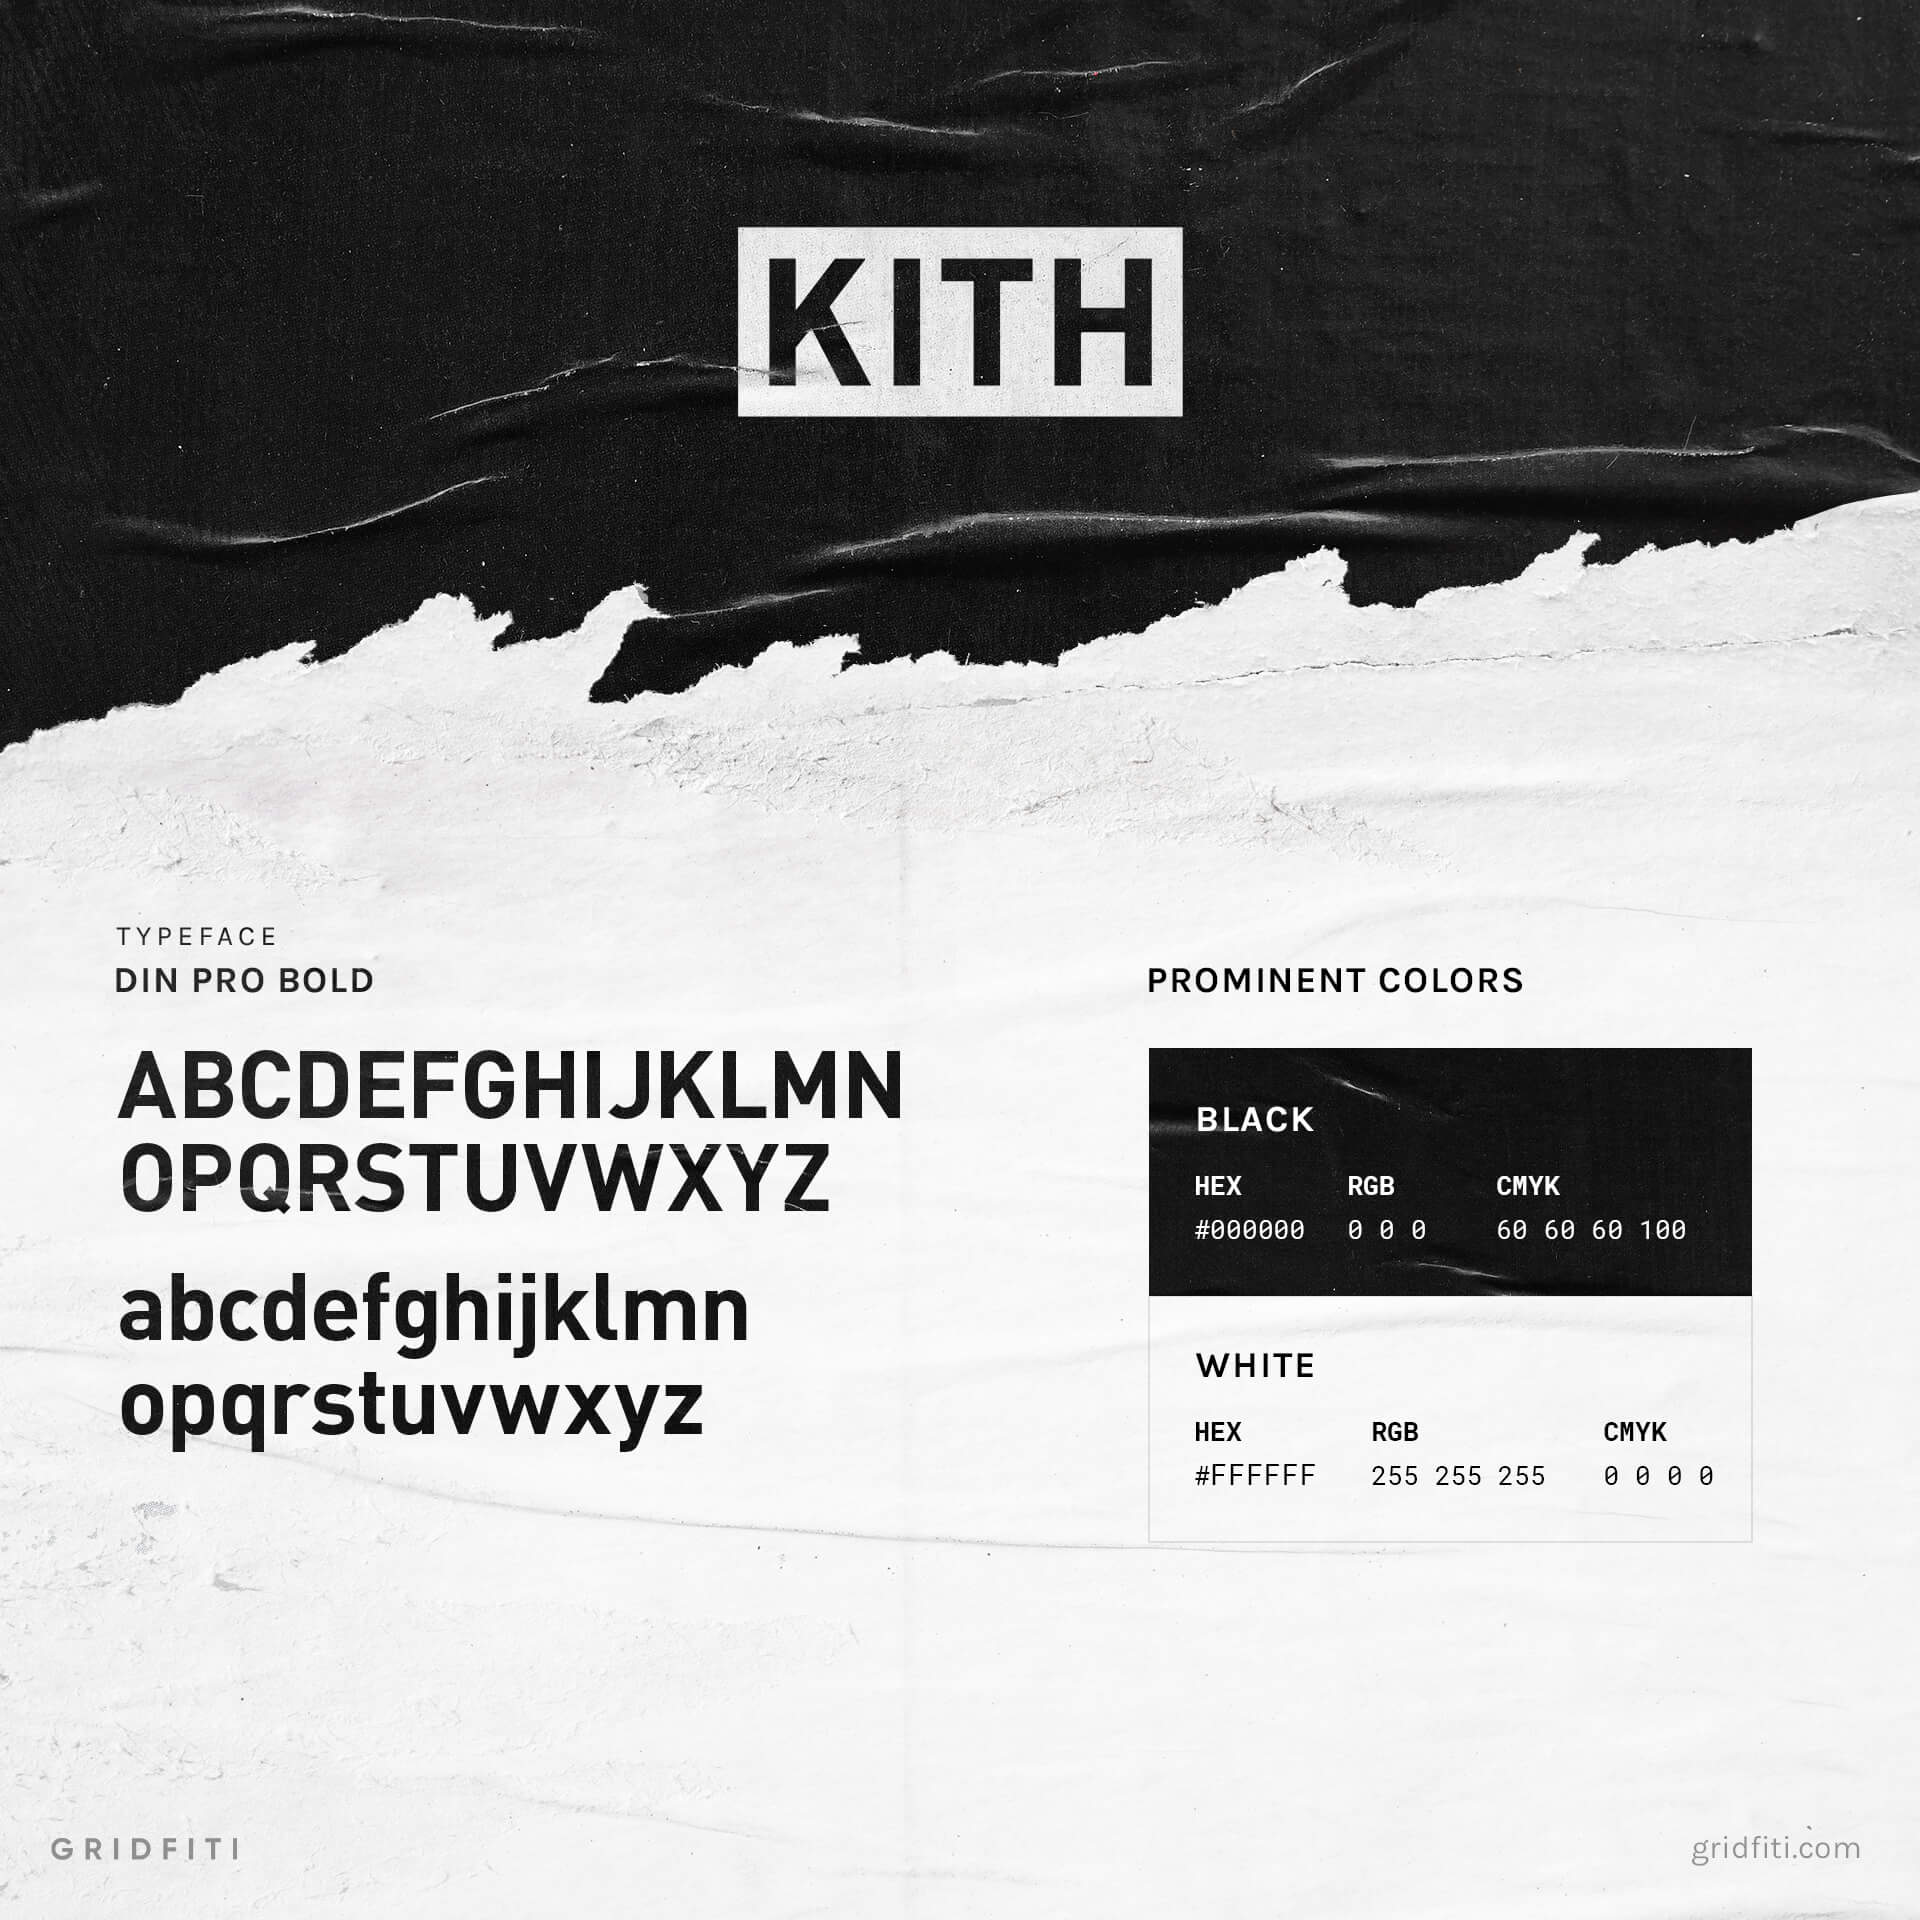 Kith Font with Logo Typeface